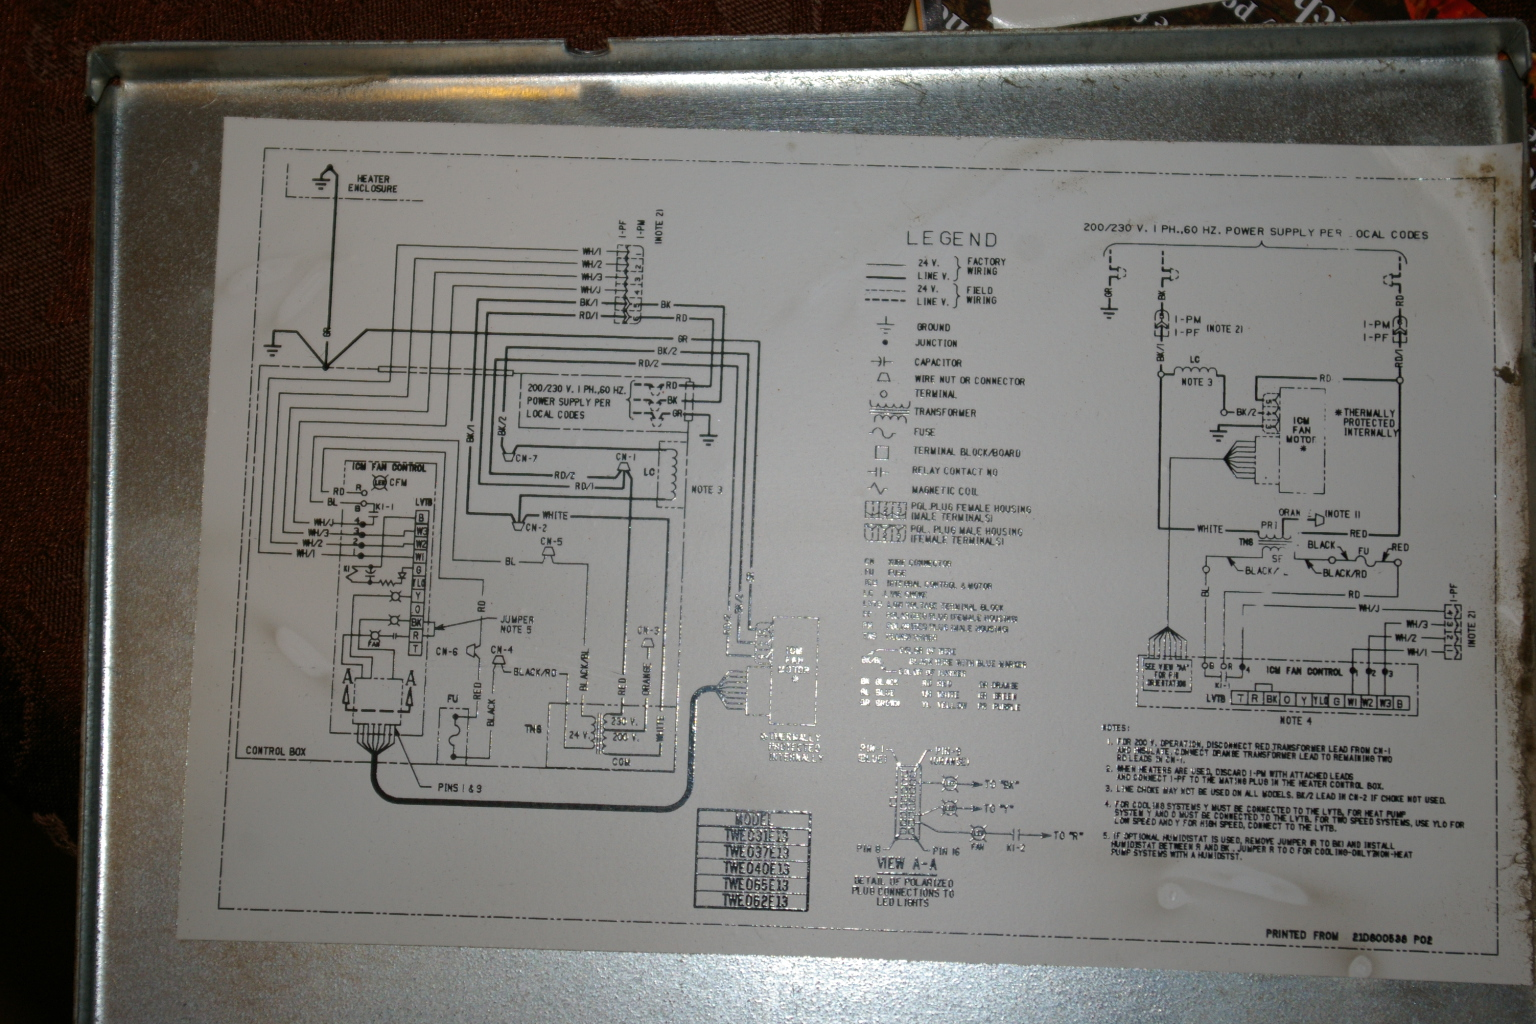 Bathroom Exhaust Fan Replacement Parts together with Trane Heat Pump Wiring Diagram Schematic moreover Goodman Condenser Fan Motor 1 6 likewise Trane Heat Pump Wiring Diagram also Baldor Motor Frame Chart. on goodman condenser fan motor replacement